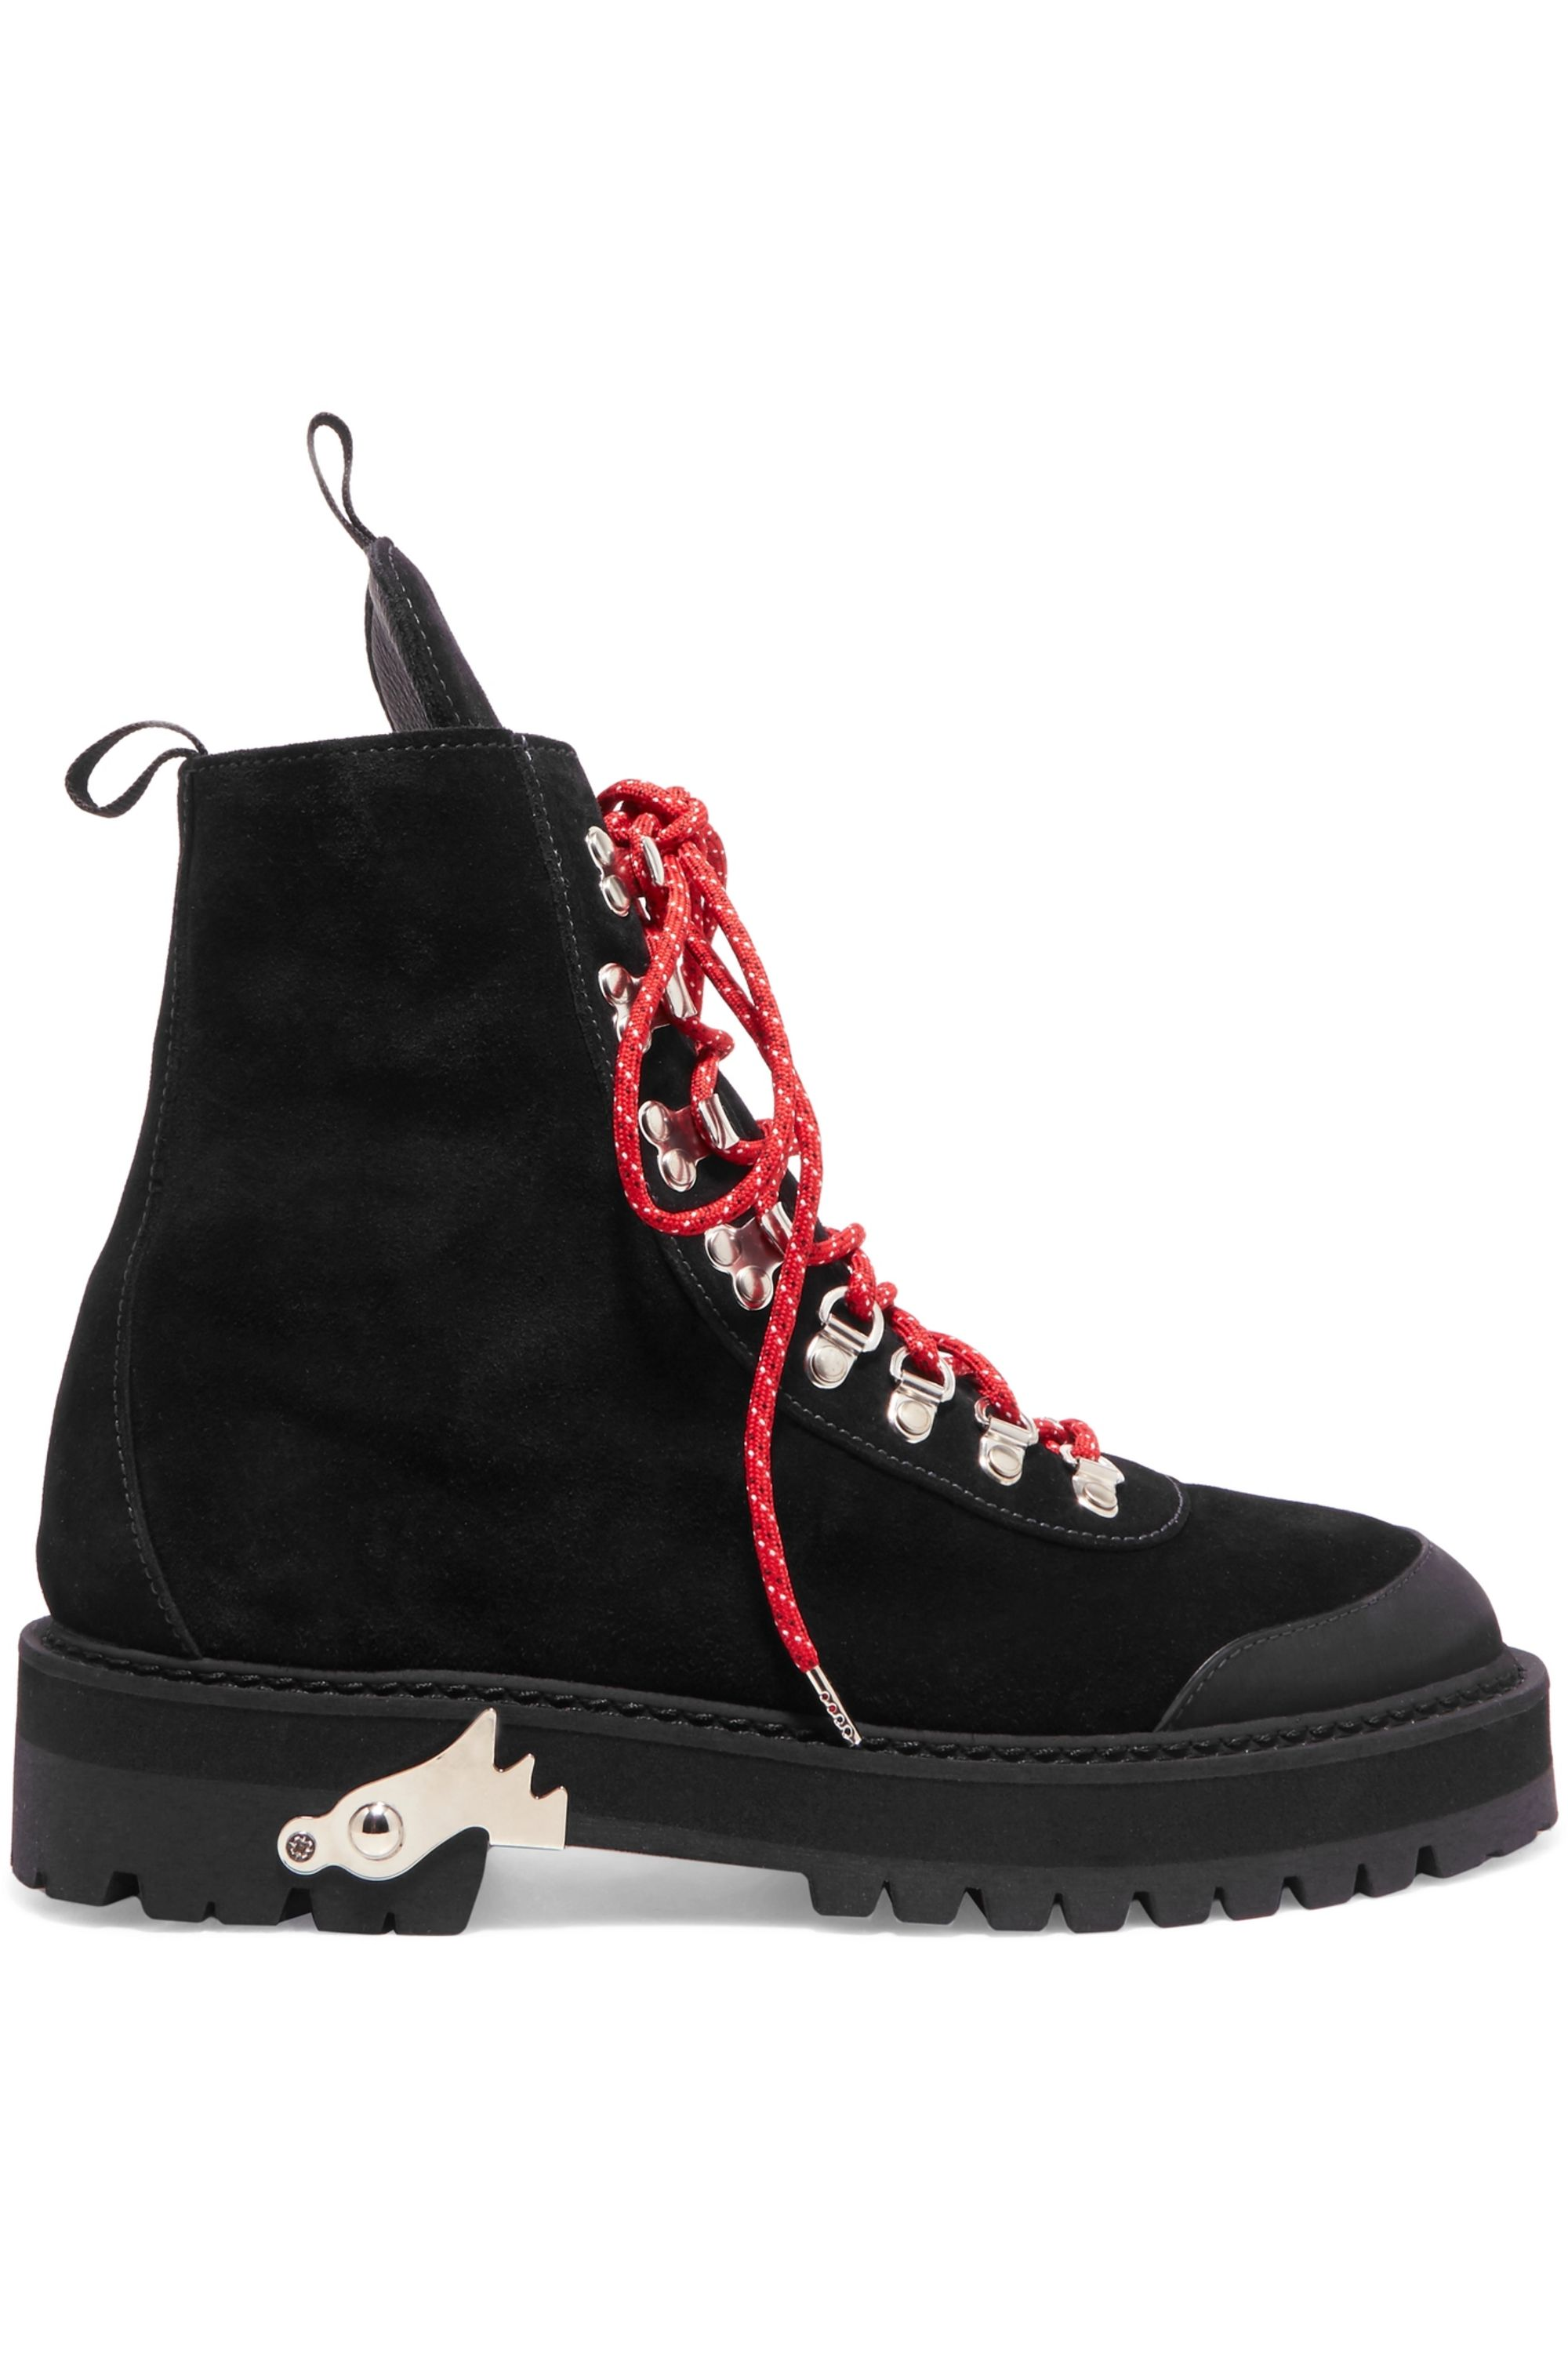 Black Hiking suede boots   Off-White